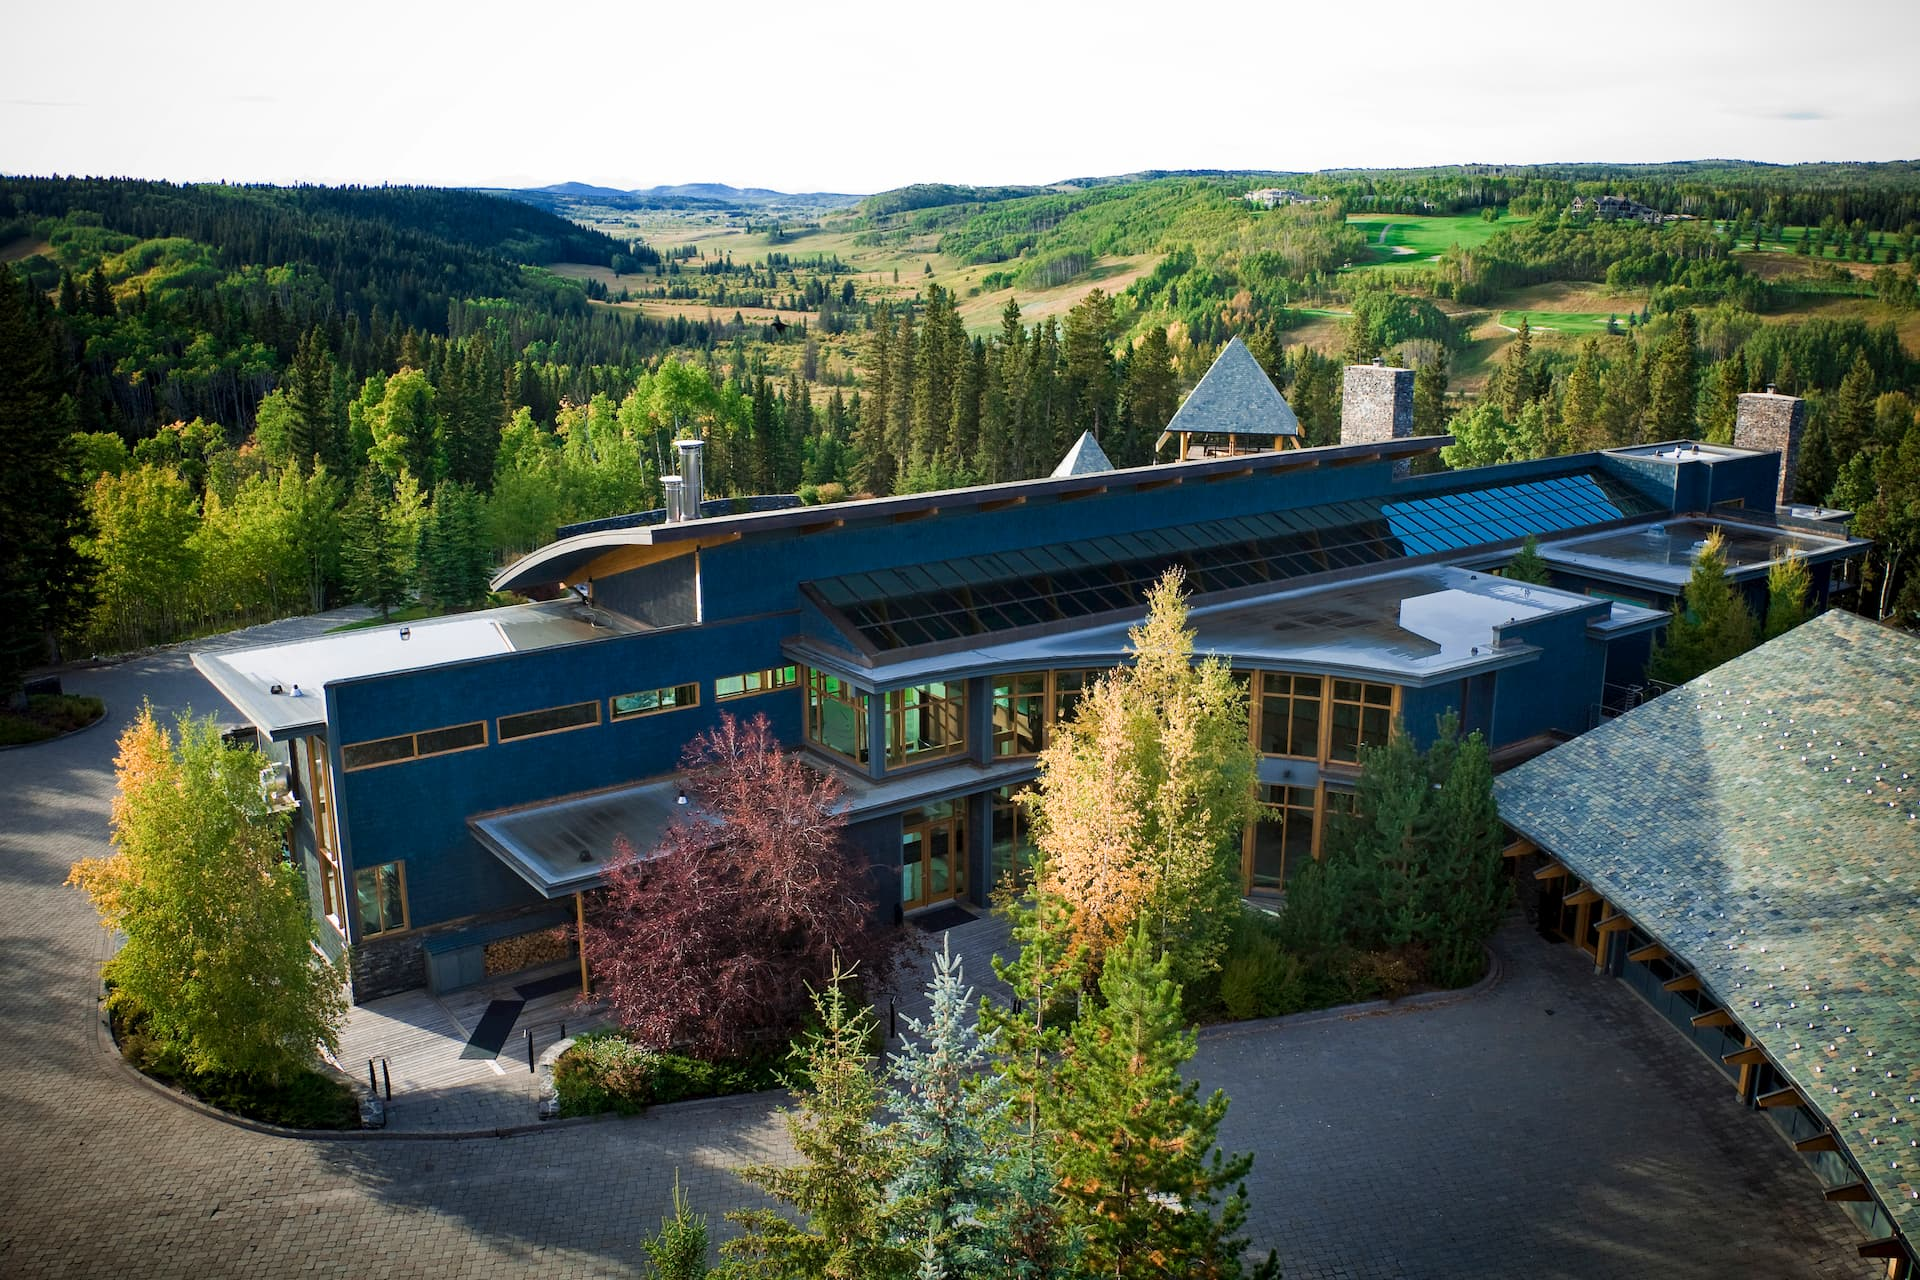 Azuridge Estate Hotel and The Foothills of the Canadian Rockies